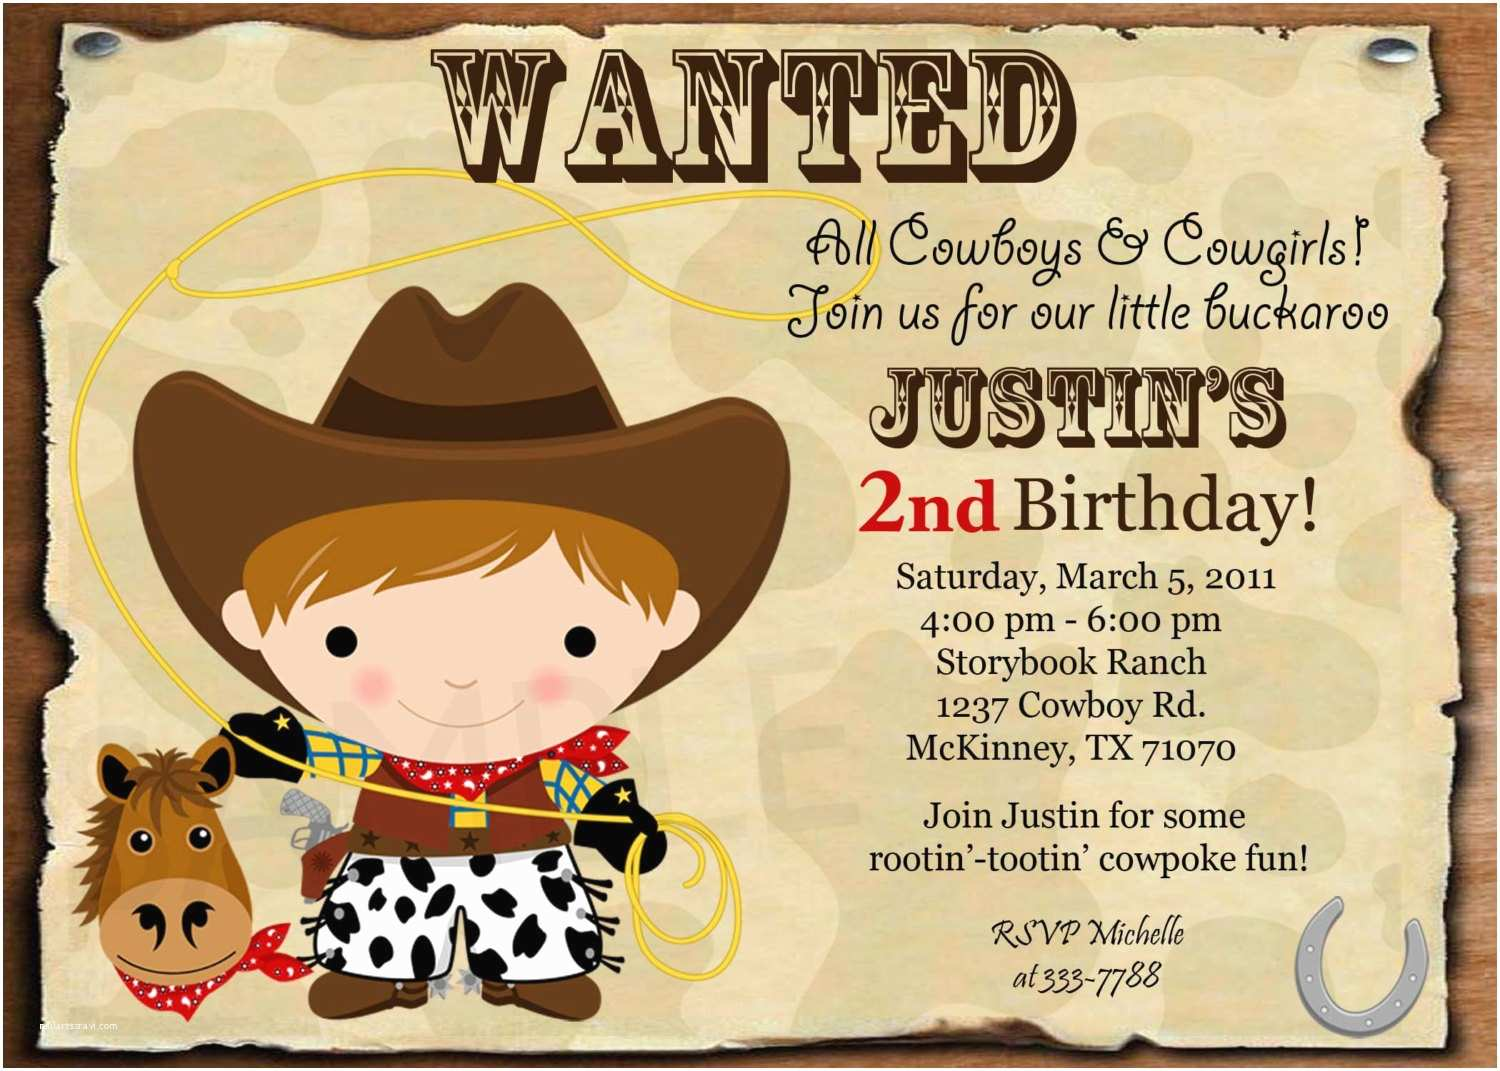 Customized Birthday Invitations Custom Personalized Cowboy or Cowgirl Wanted by theprintfairy